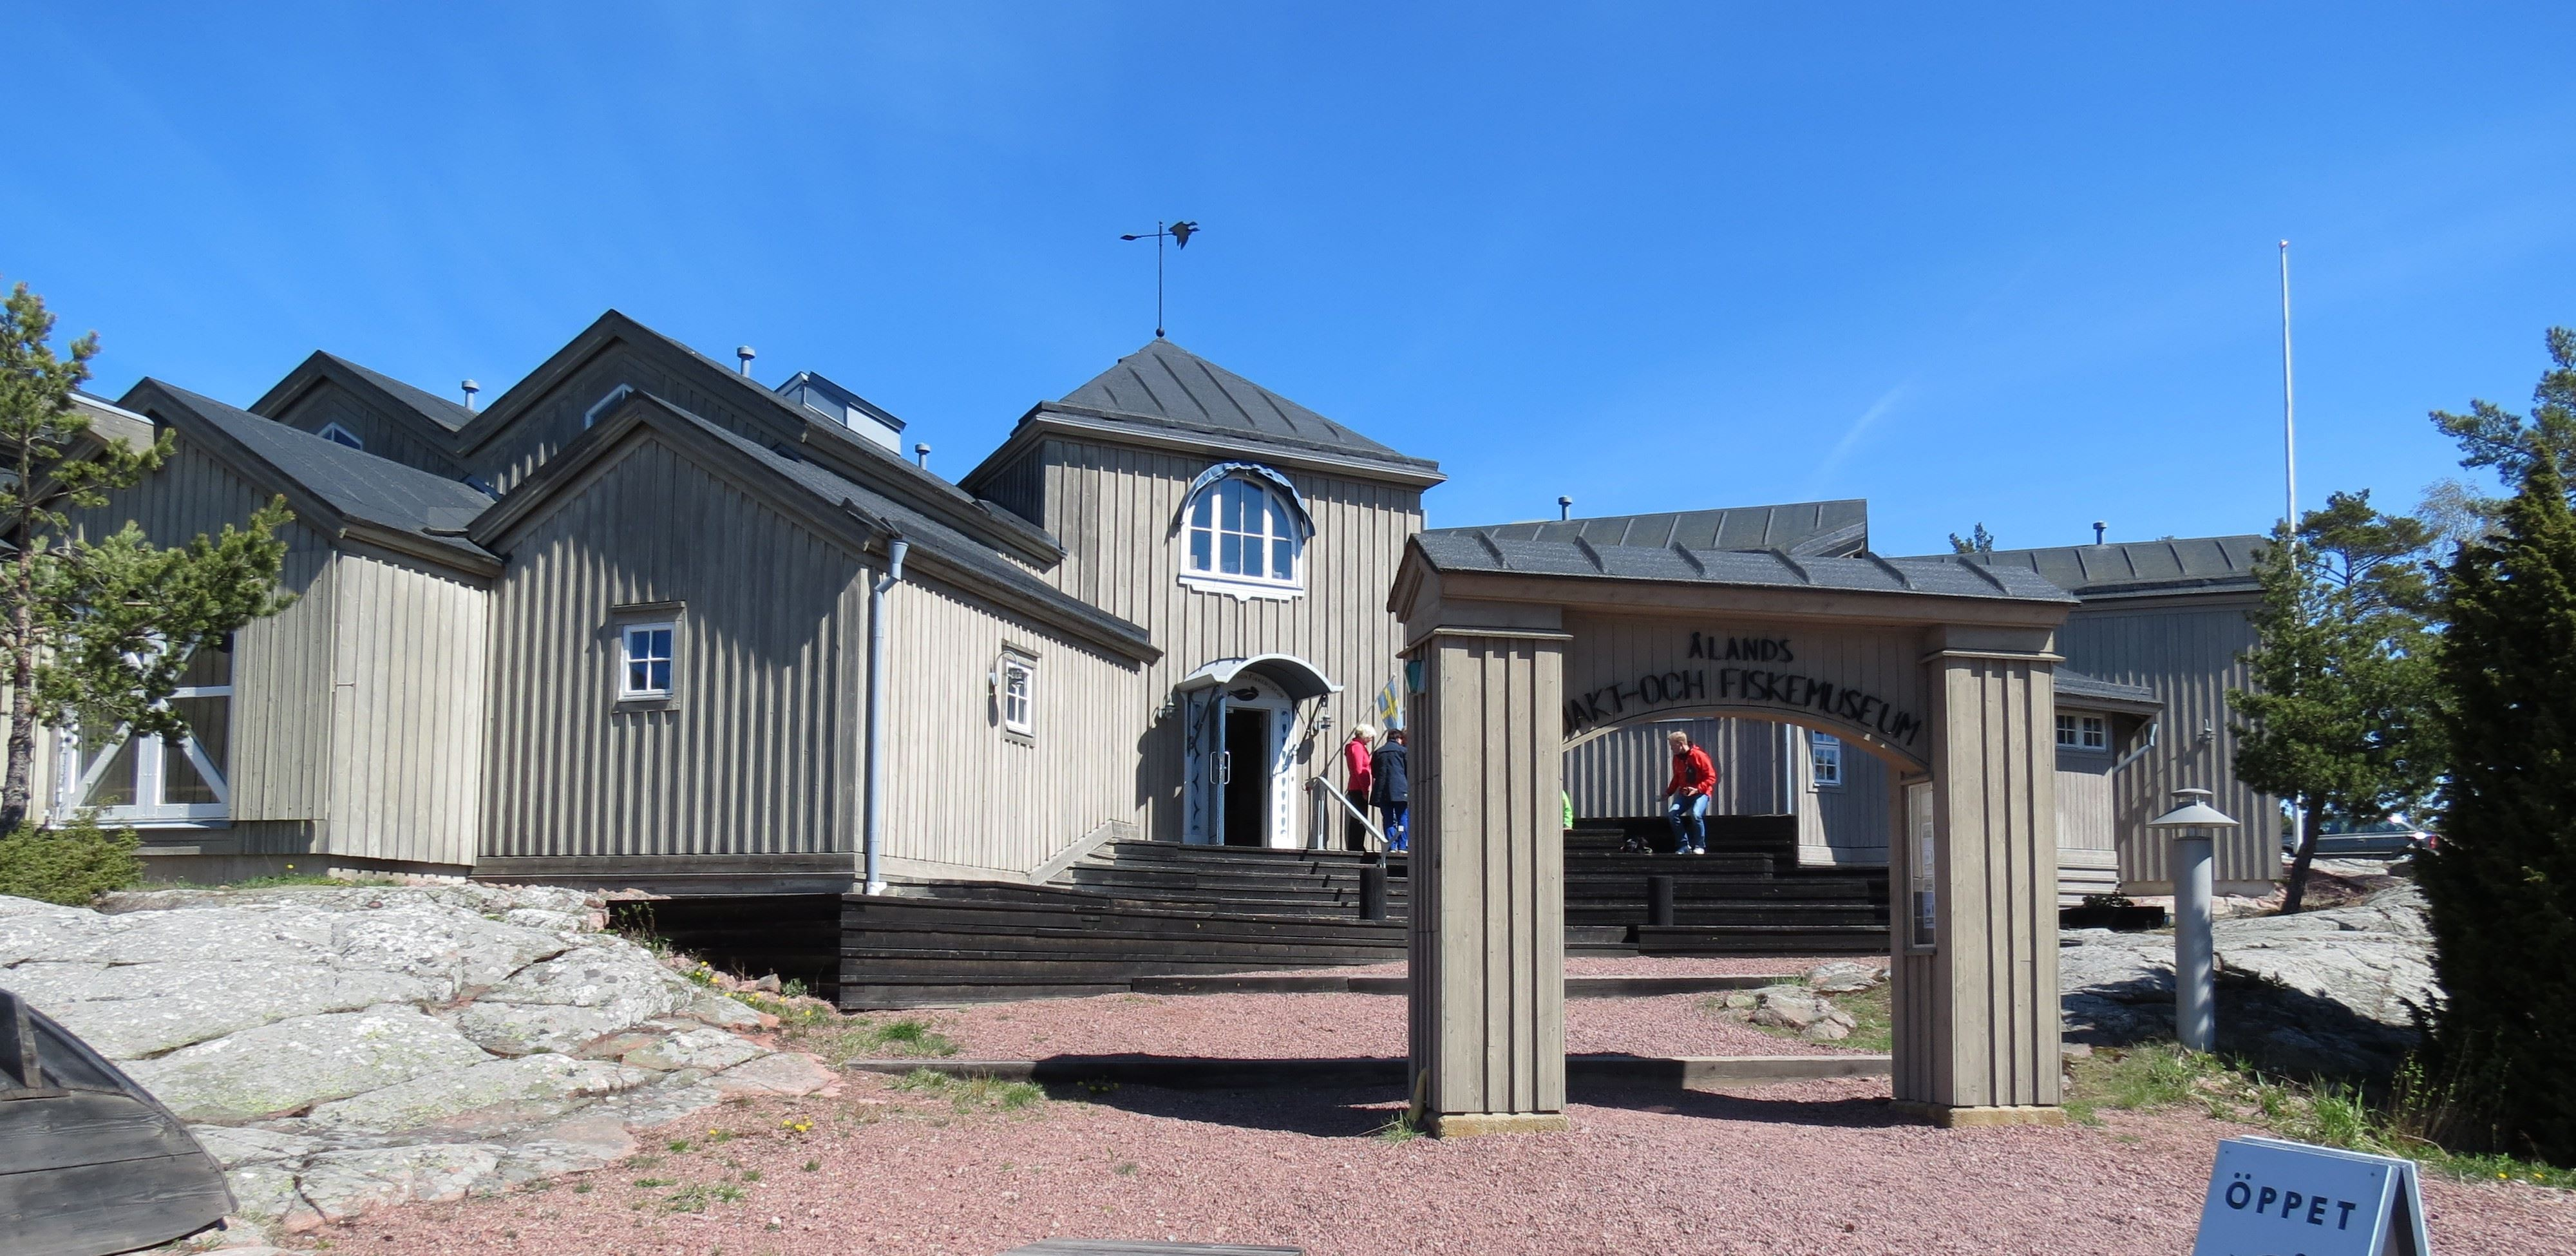 Åland Hunting and Fishing Museum - Guide